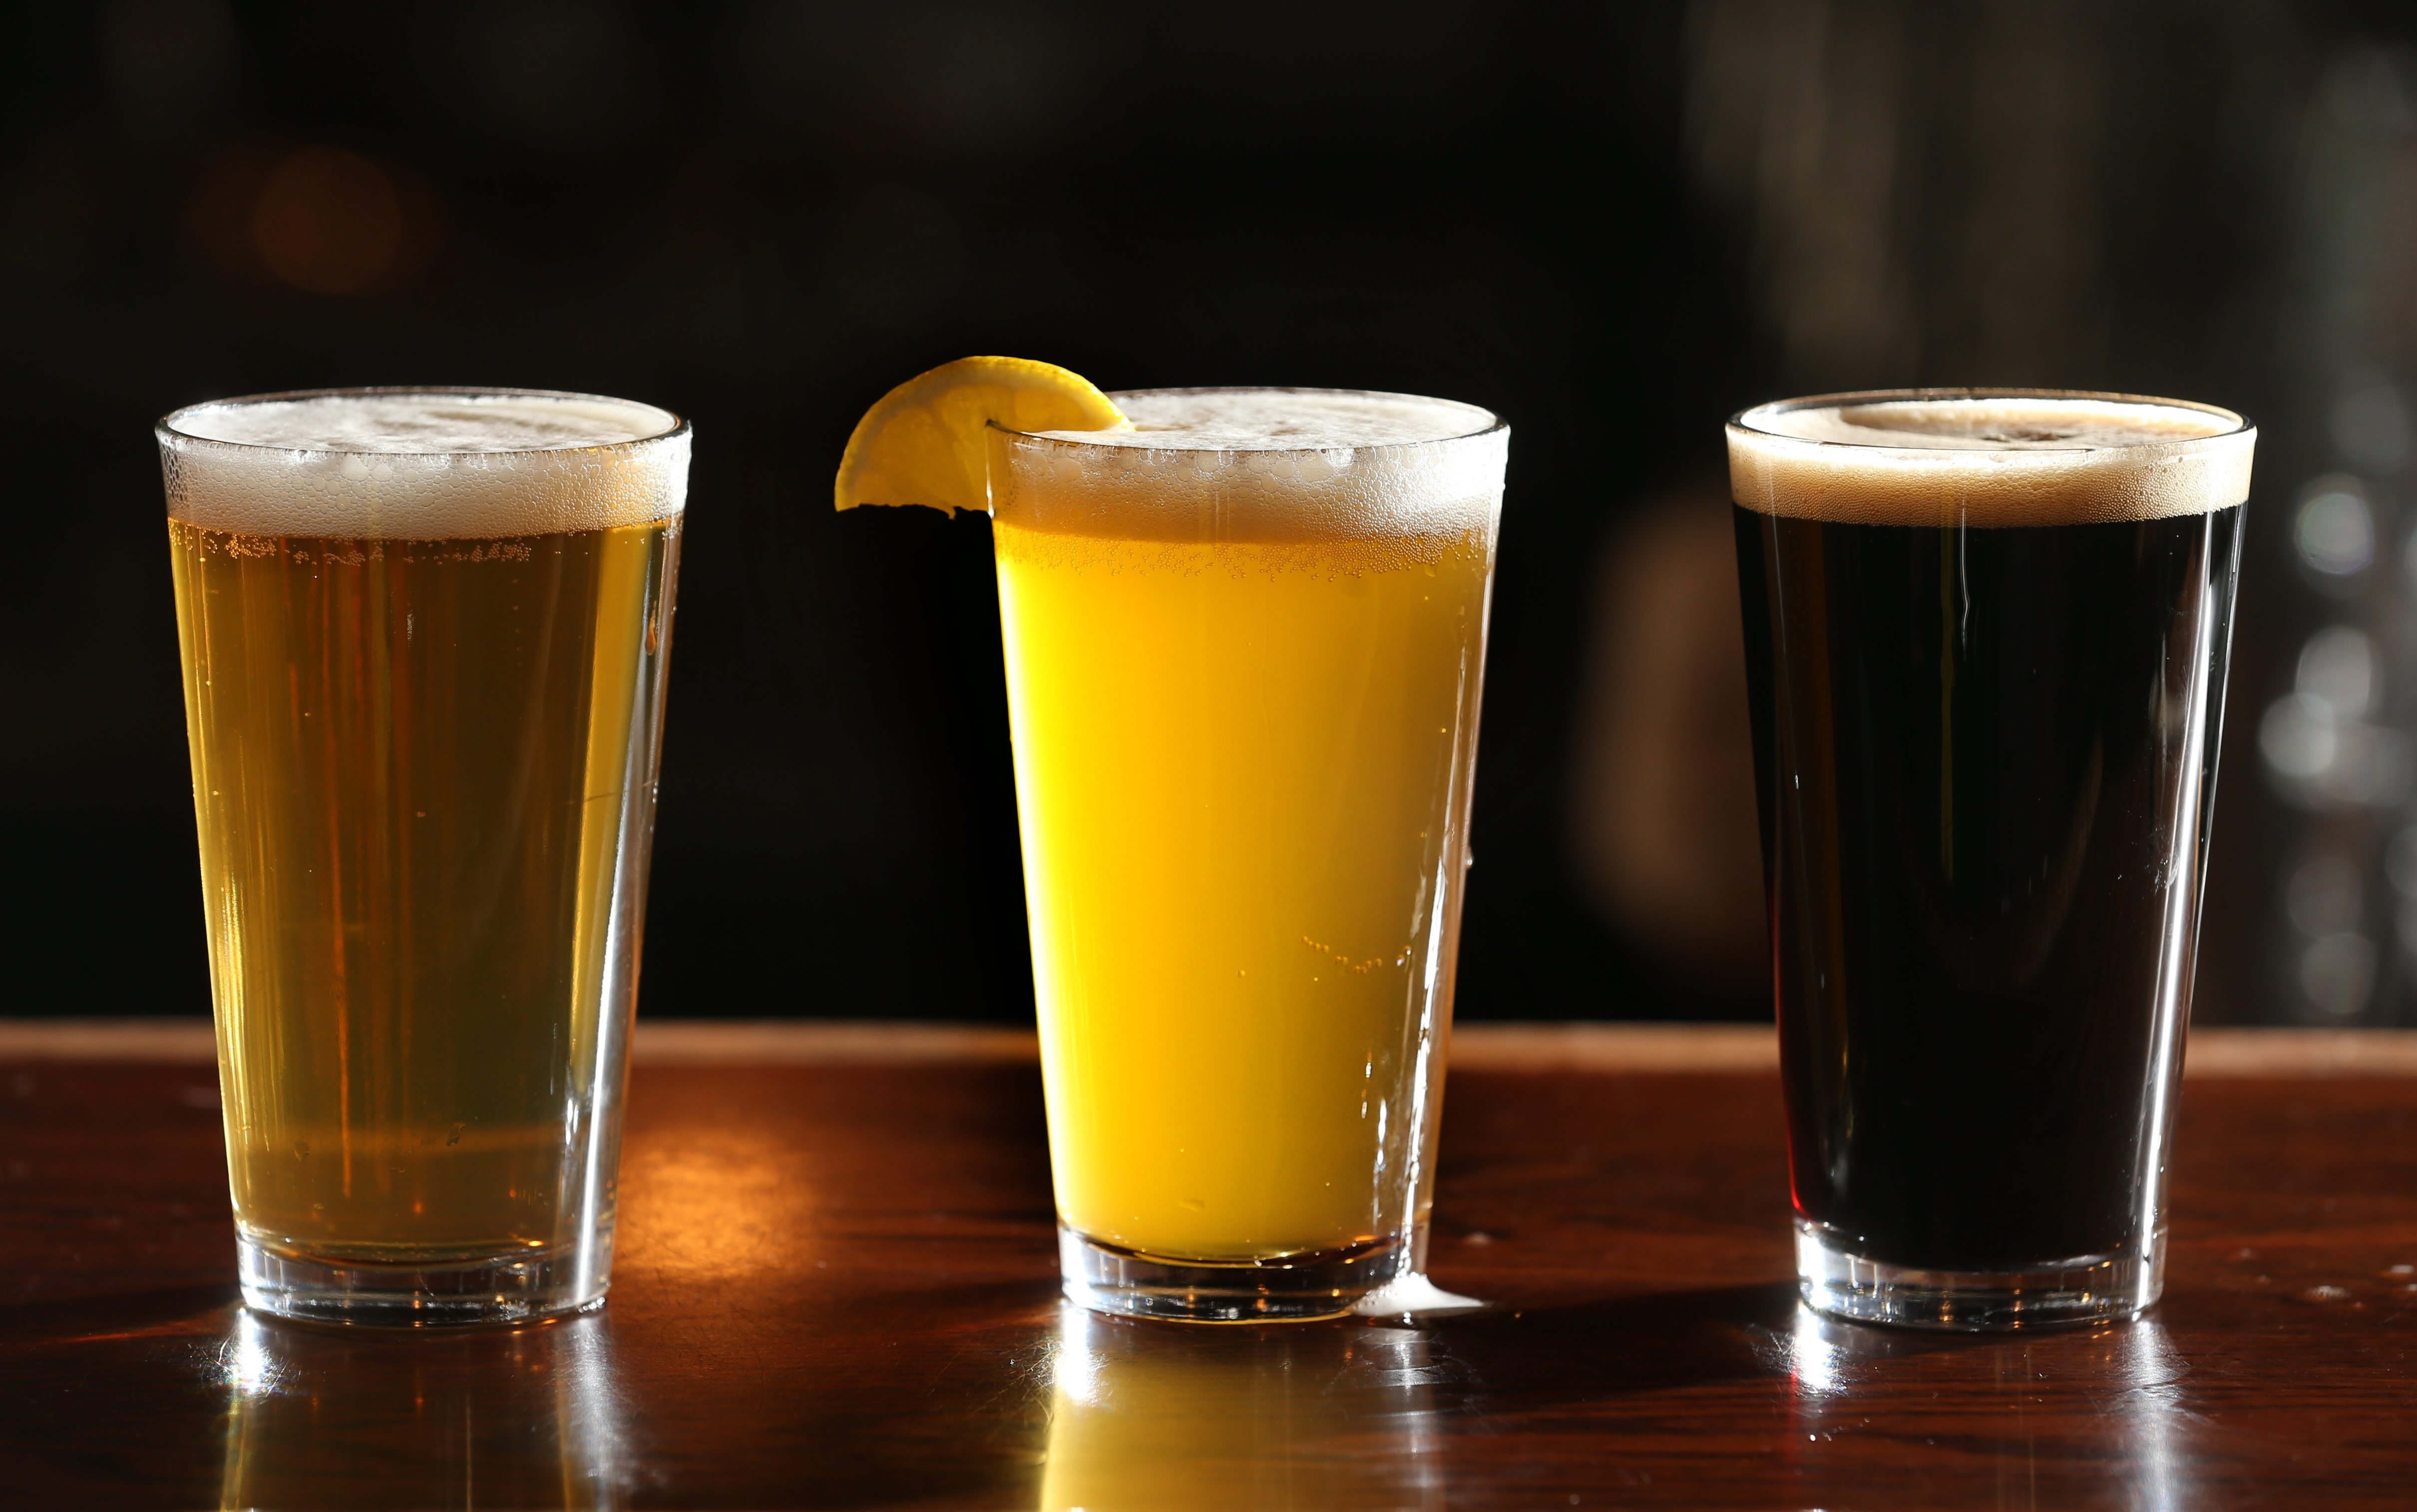 Pearls Street Grill & Brewery head brewer Chris Herr points our some health benefits one can get from drinking beer in moderation.   Beers from left are Lighthouse Golden Ale, Wild Ox Wheat and Street Brawler Oatmeal Stout. Photo taken, Monday, Feb. 1, 2016.  (Sharon Cantillon/Buffalo News)